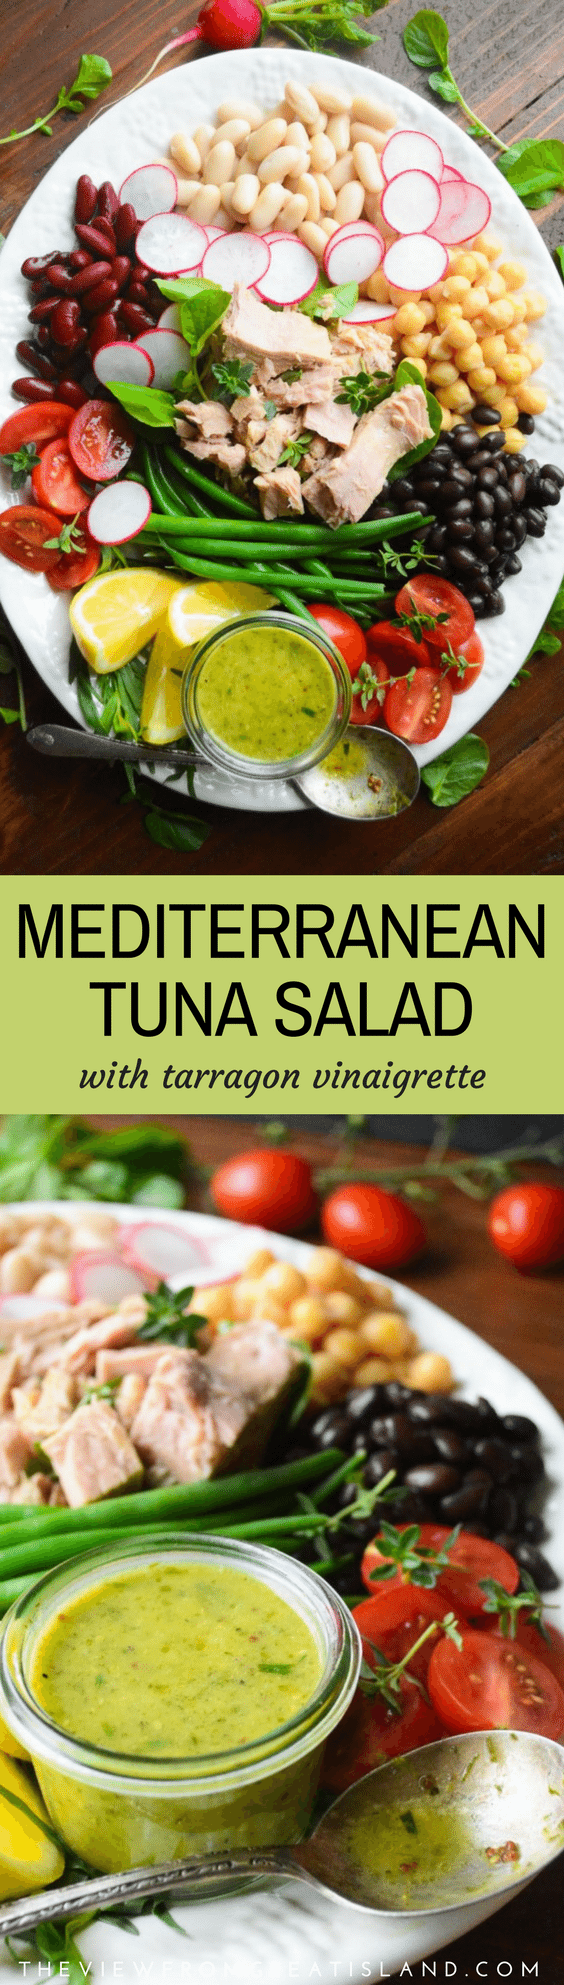 Mediterranean Tuna Salad with Tarragon Vinaigrette ~ this classic healthy French tuna salad plate is a wonderful melange of flavors, colors, and textures. #recipe #French #authentic #GenovaTuna #tuna #mediterraneanfood #tunasalad #healthy #lunch #tunasaladrecipe #healthysaladrecipe #salad #seafood #fish